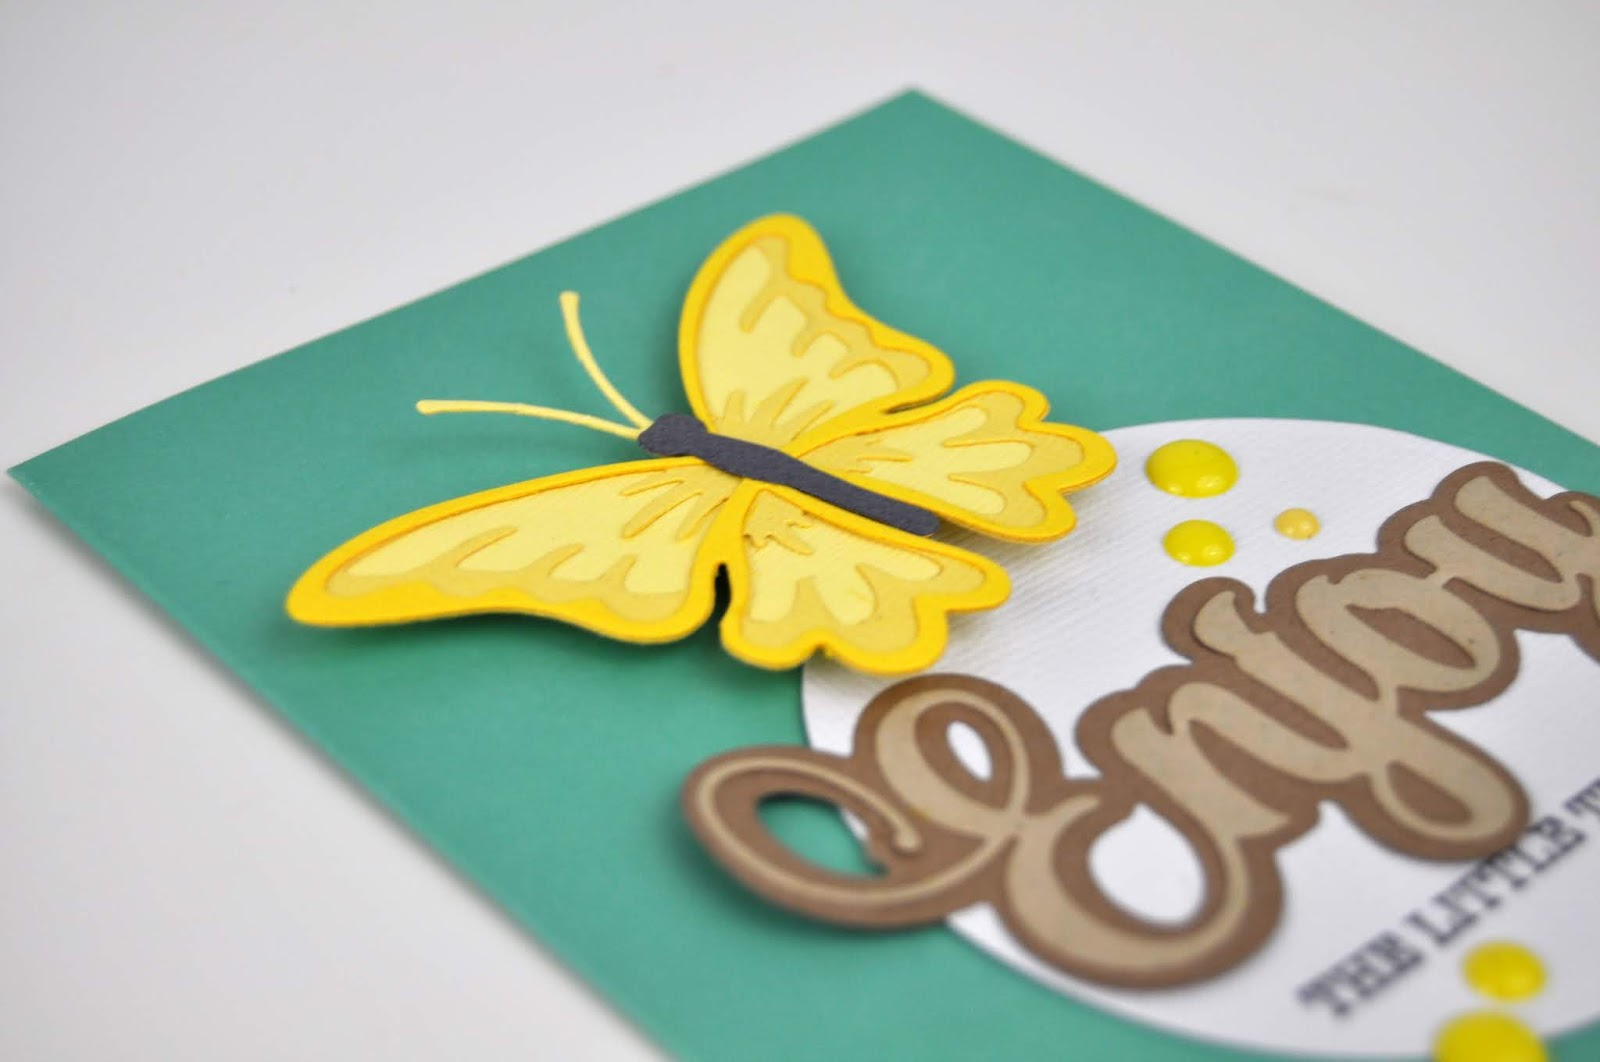 Spellbinders Exclusive Indie Die collection. Jen Gallacher die cuts a layered butterfly from different colors of cardstock using exclusive Spellbinders die sets. #diecutting #spellbinders #jengallacher #cardmaking